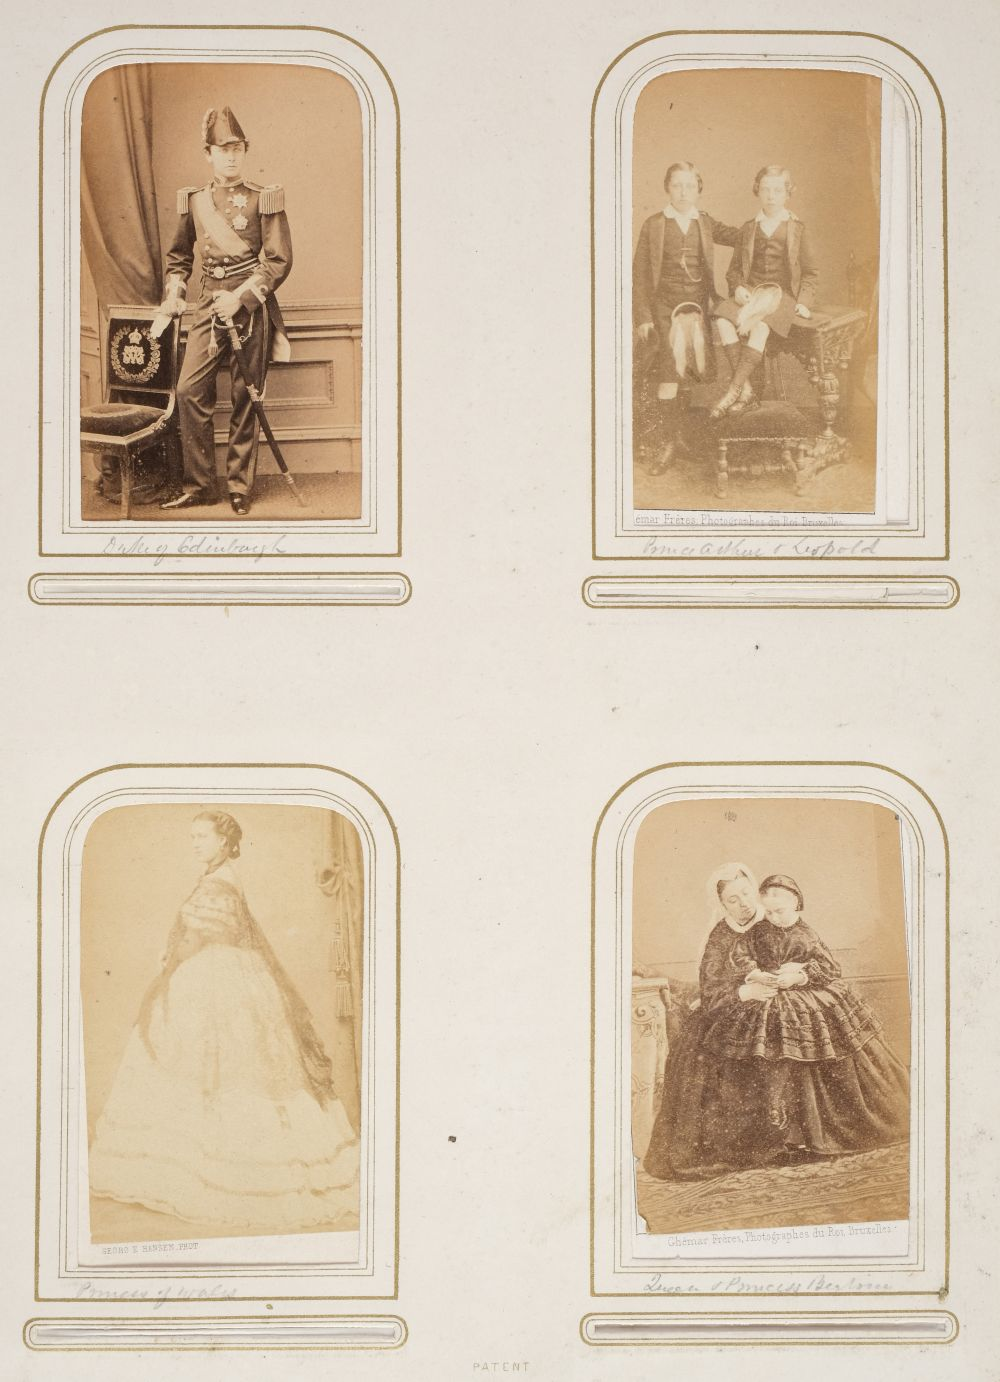 * Cartes de visite. A group of 3 albums of cartes de visite and cabinet cards - Image 3 of 26